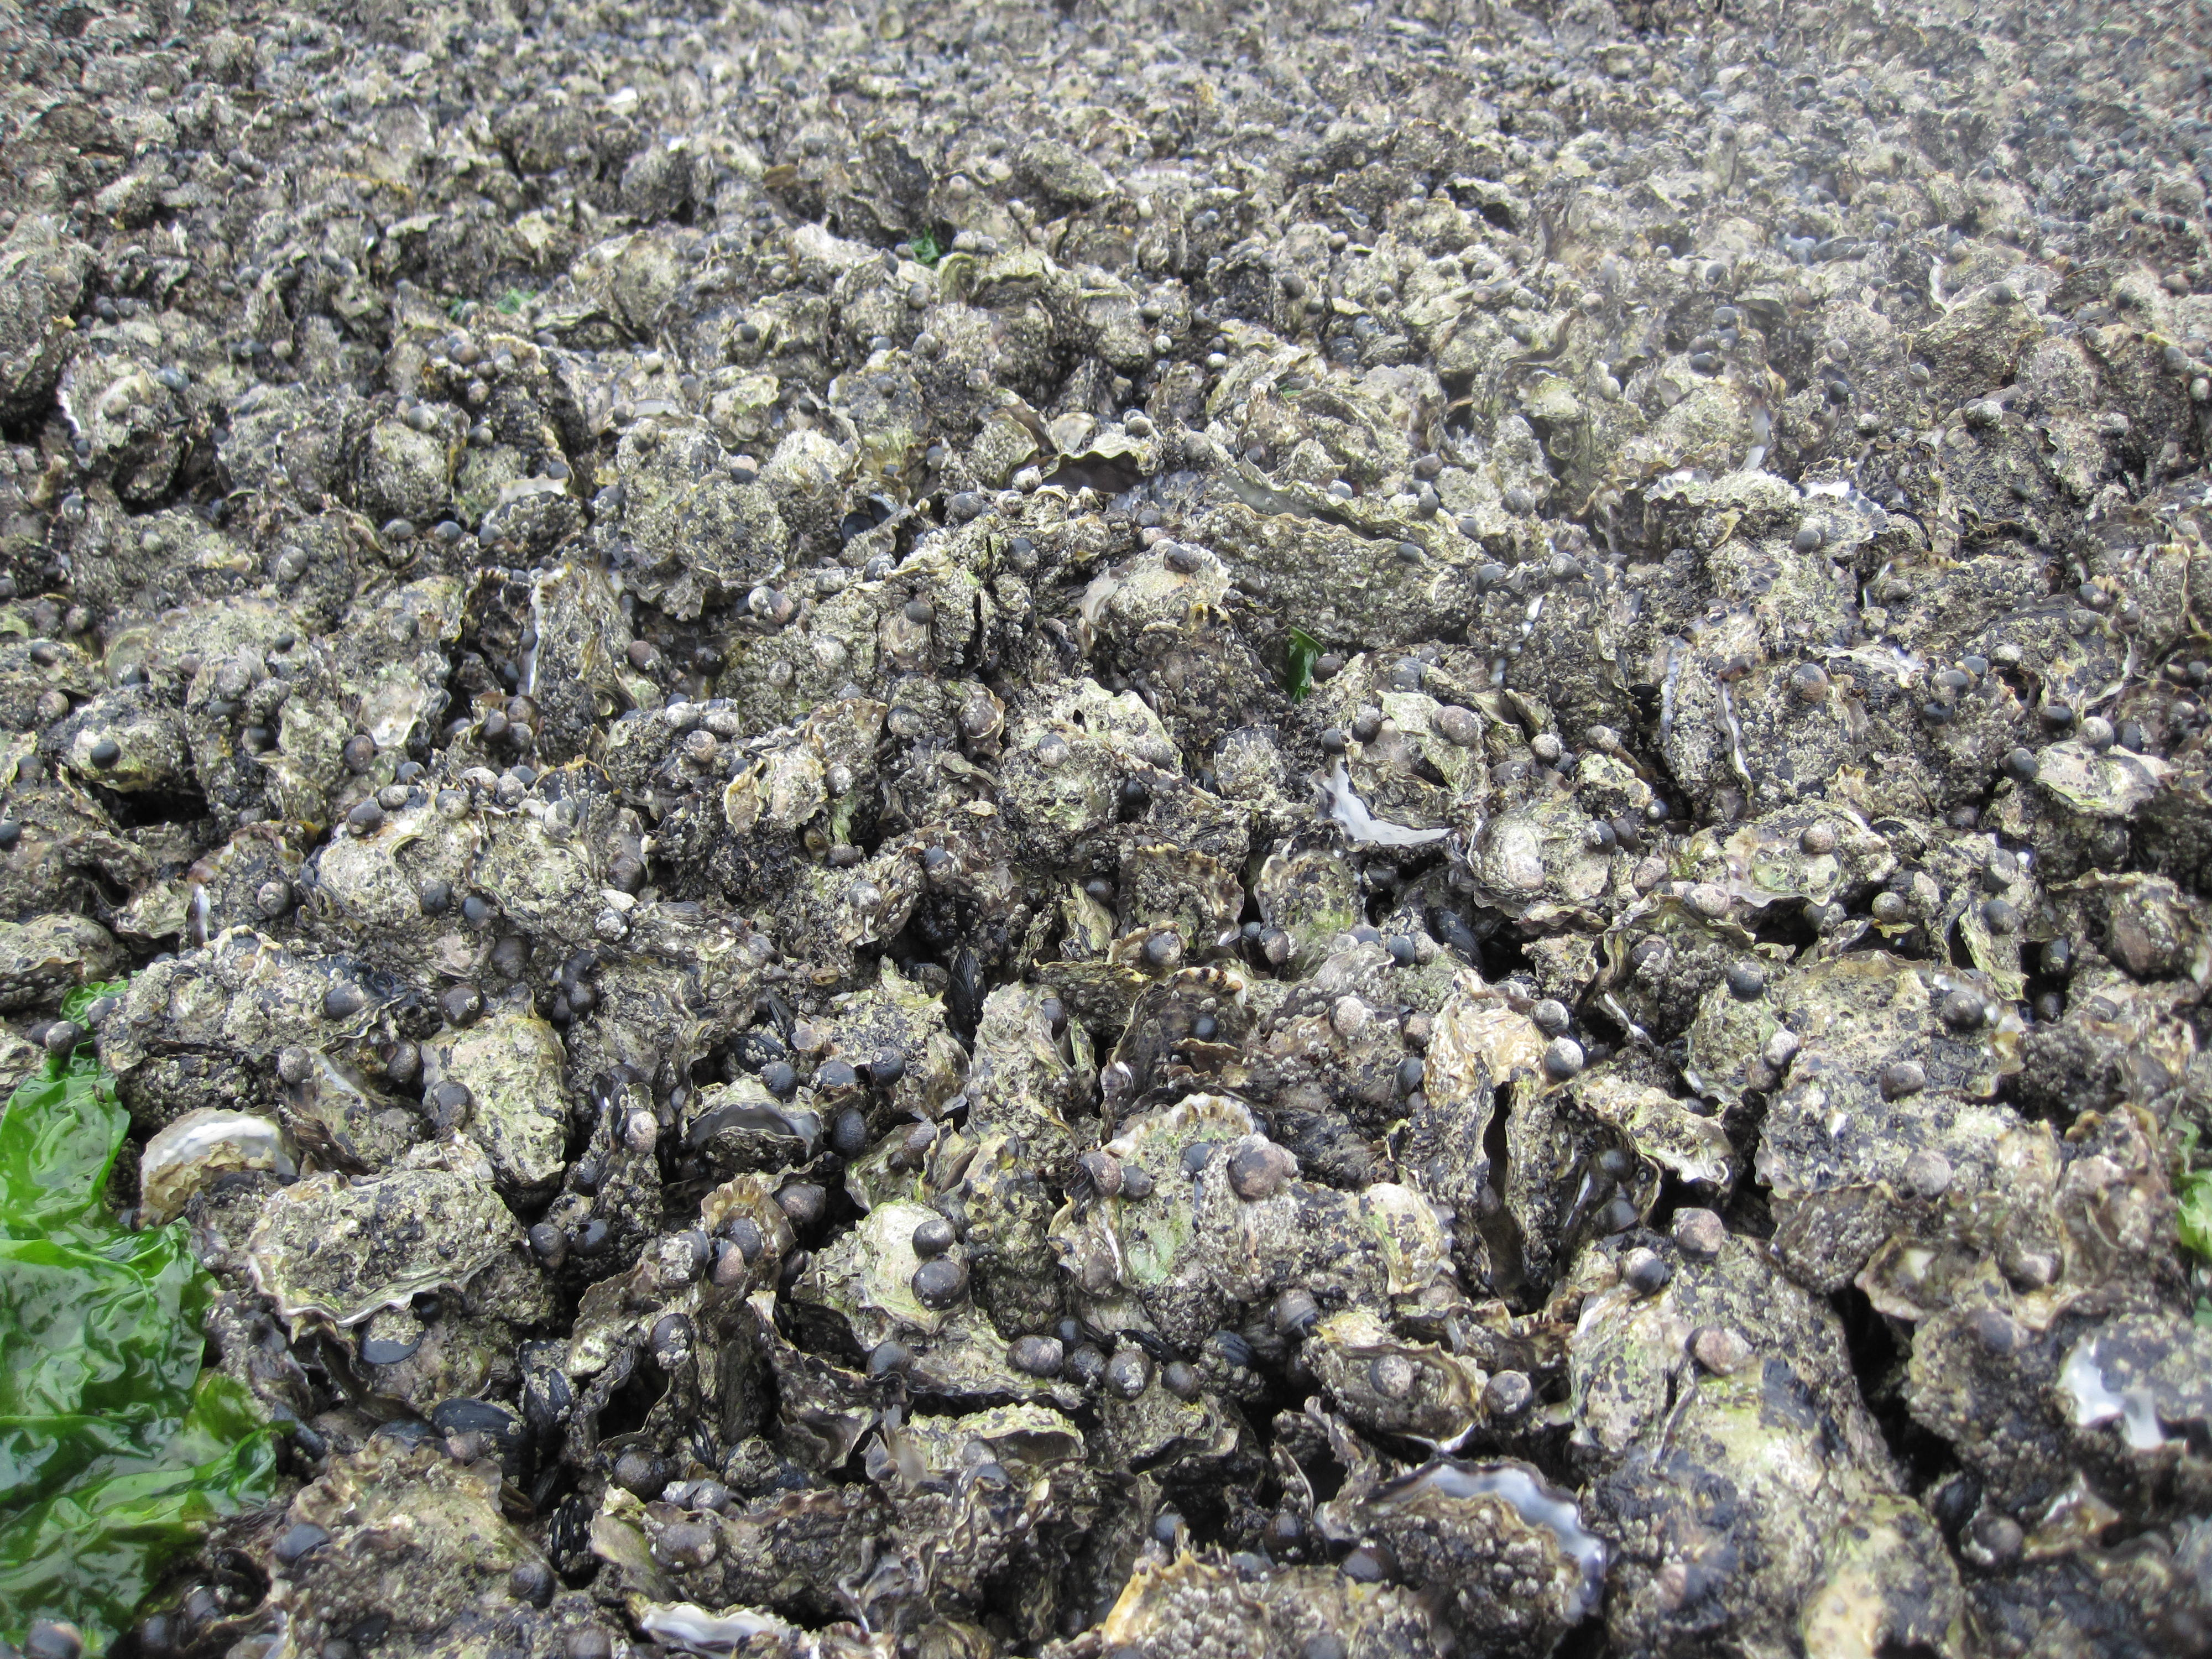 Mixed bed of native blue mussels and invasive Pacific oysters